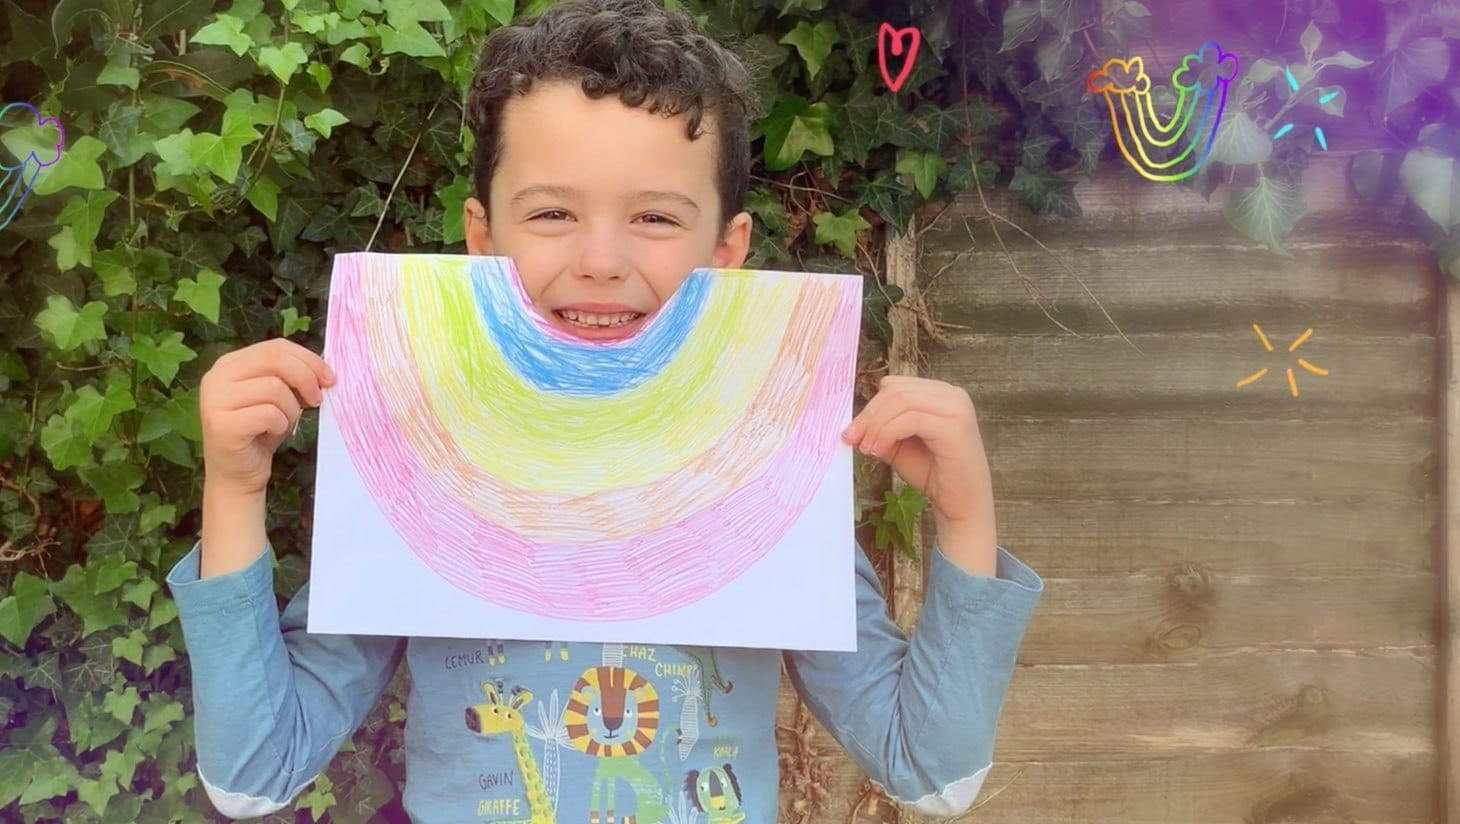 A child holding a rainbow